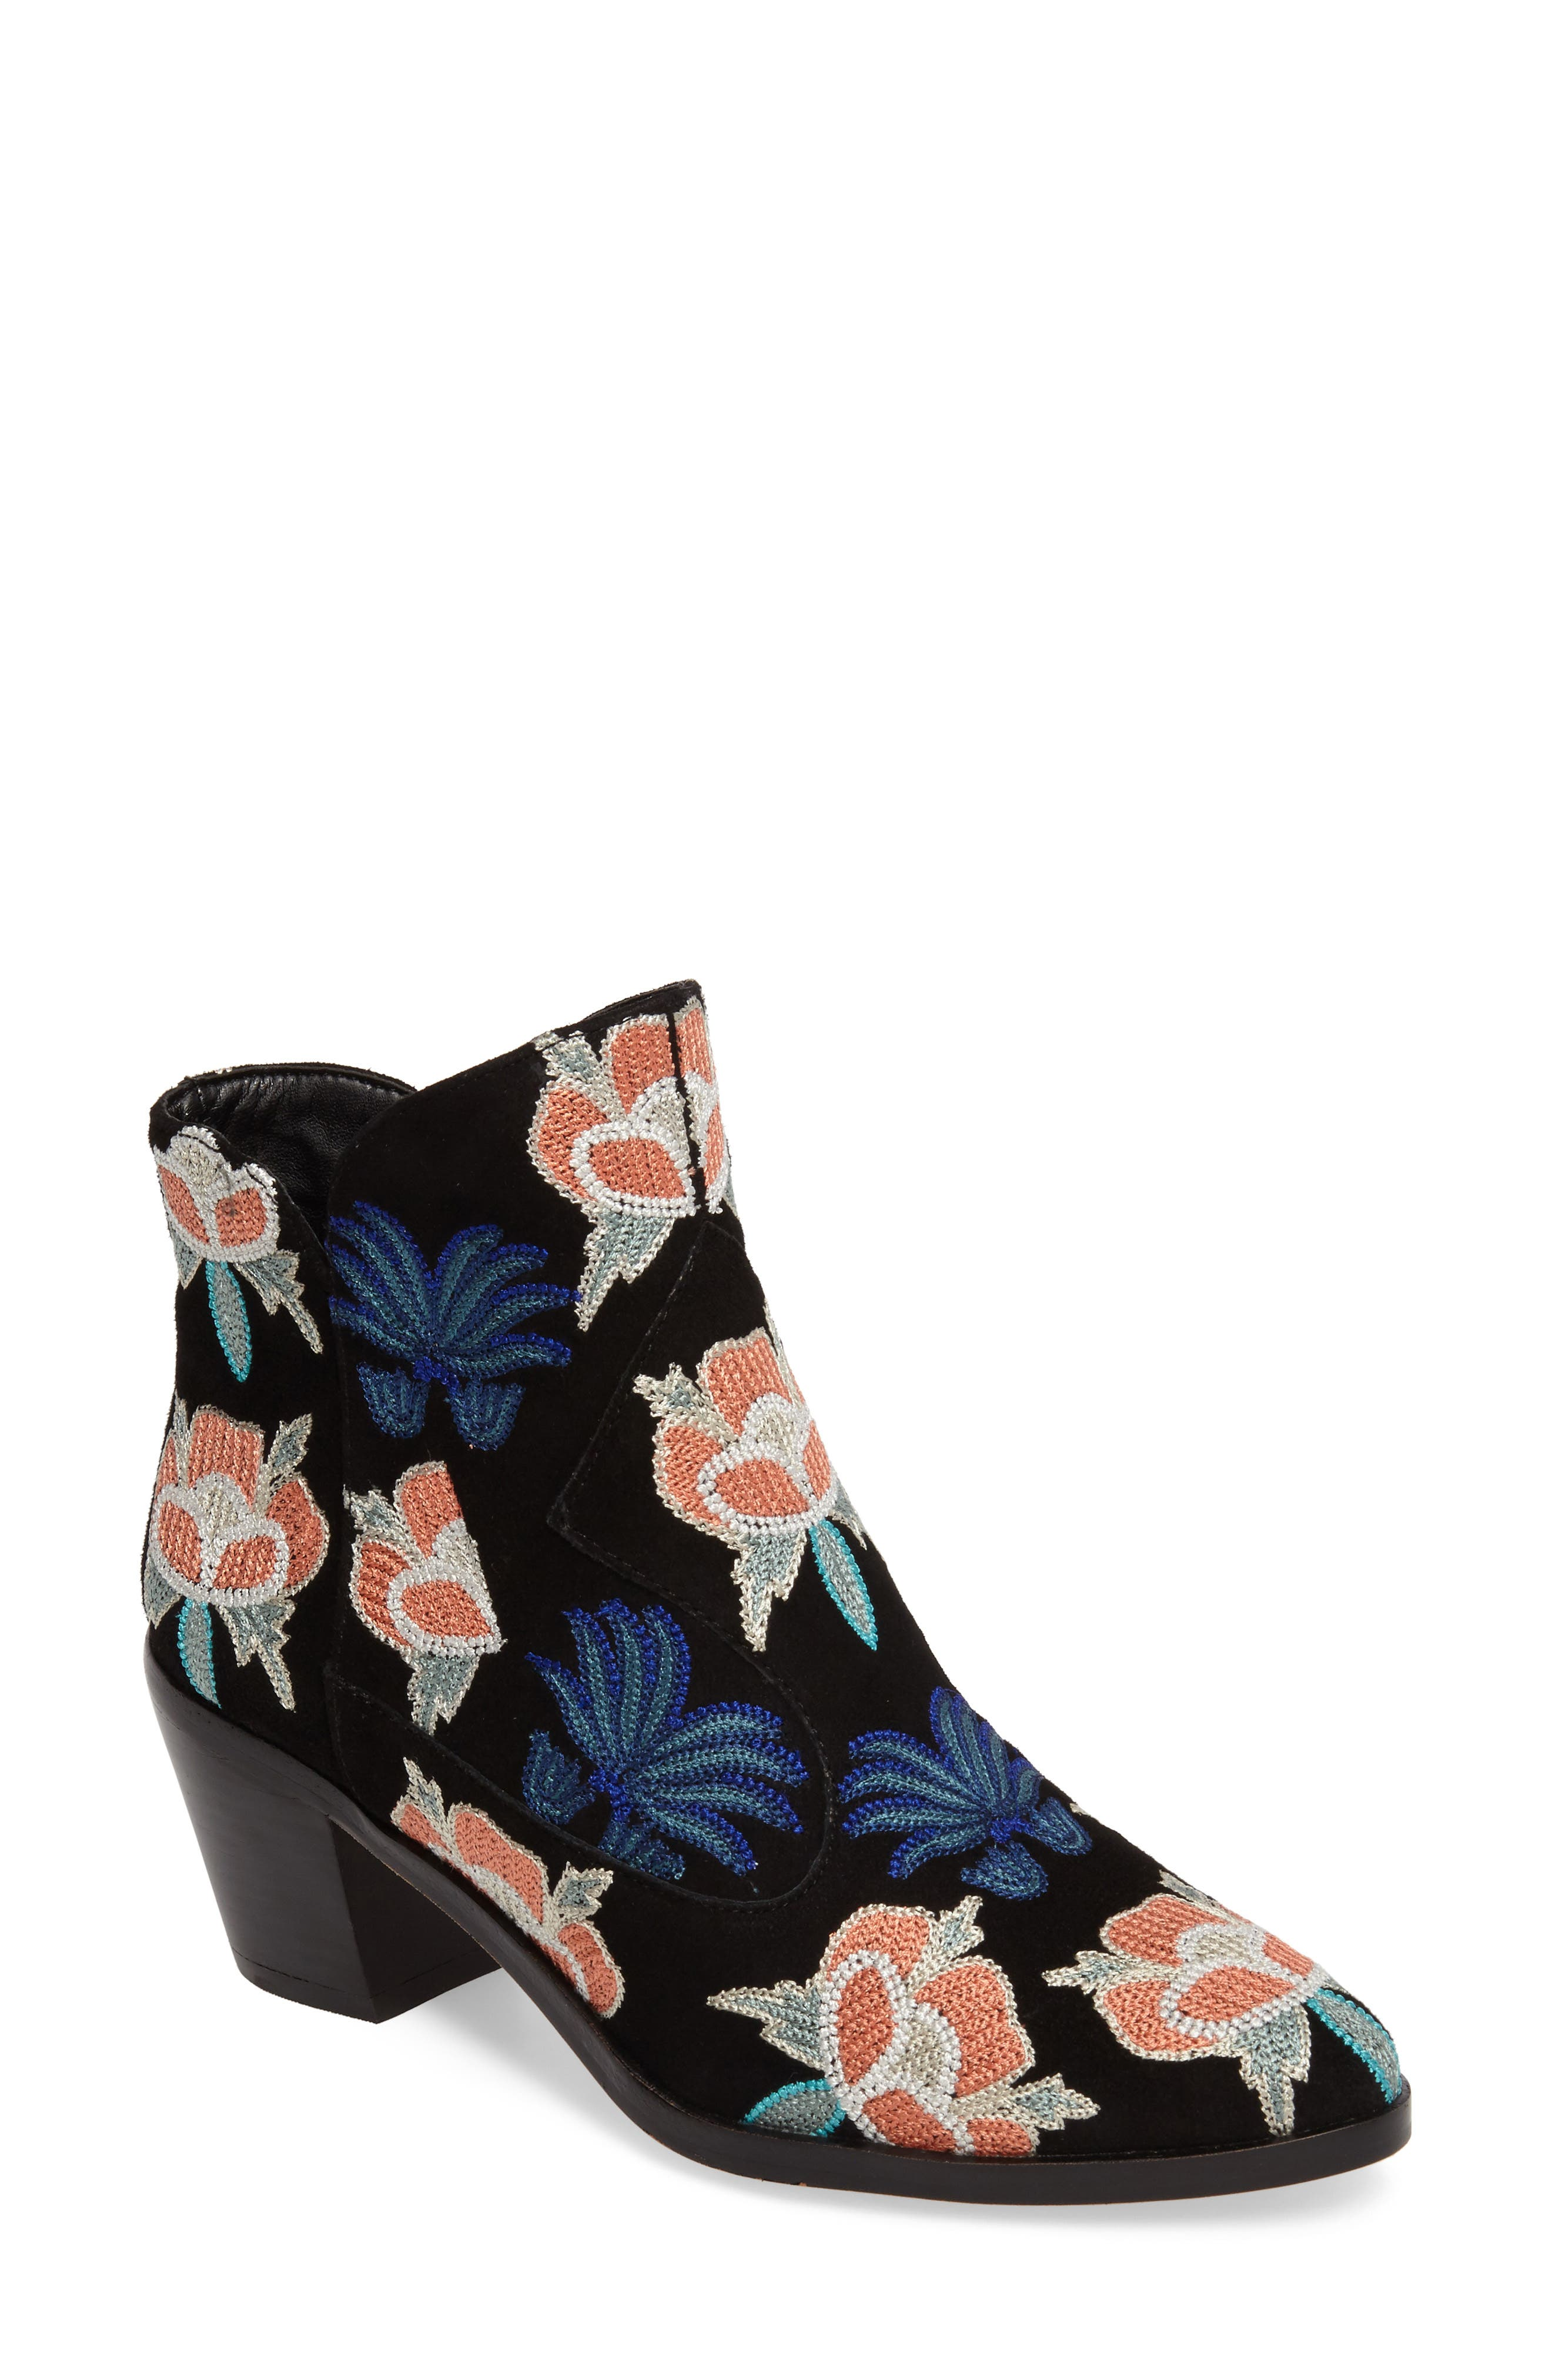 Lulu Too Flower Embroidered Bootie,                             Main thumbnail 1, color,                             Black Suede